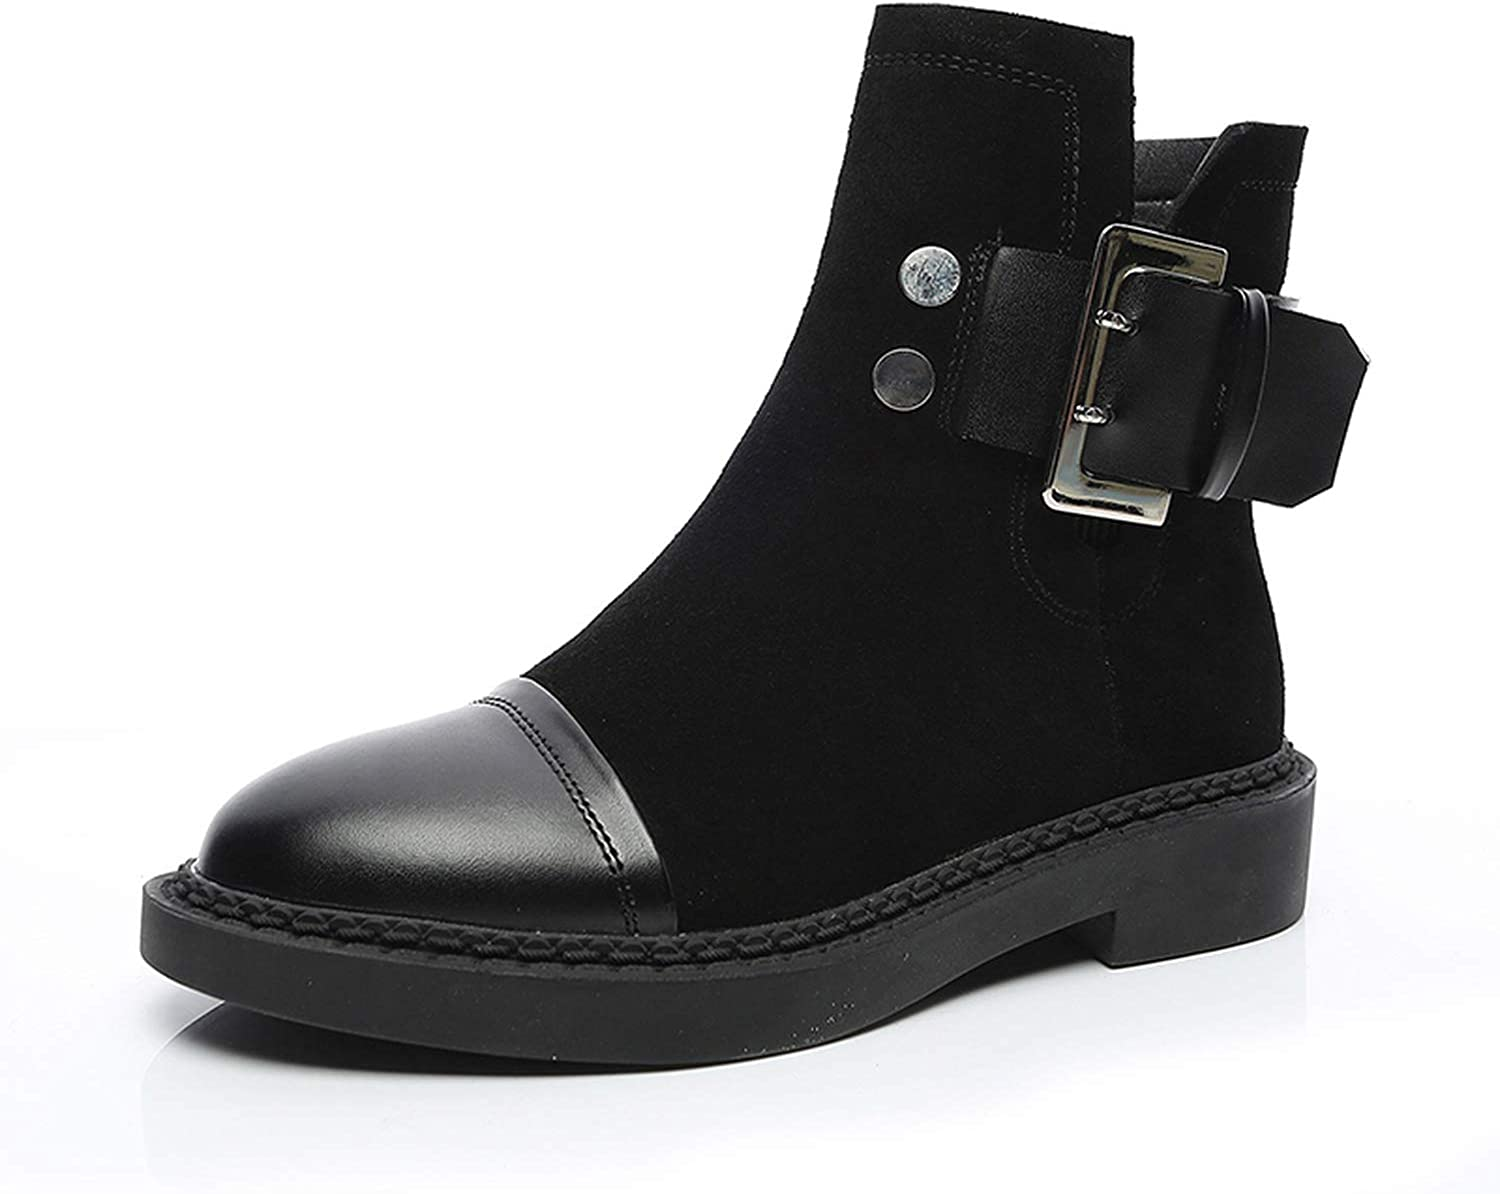 Women Boots Genuine Leather Ankle Boot Warm Plush Black Boot Female Round Toe